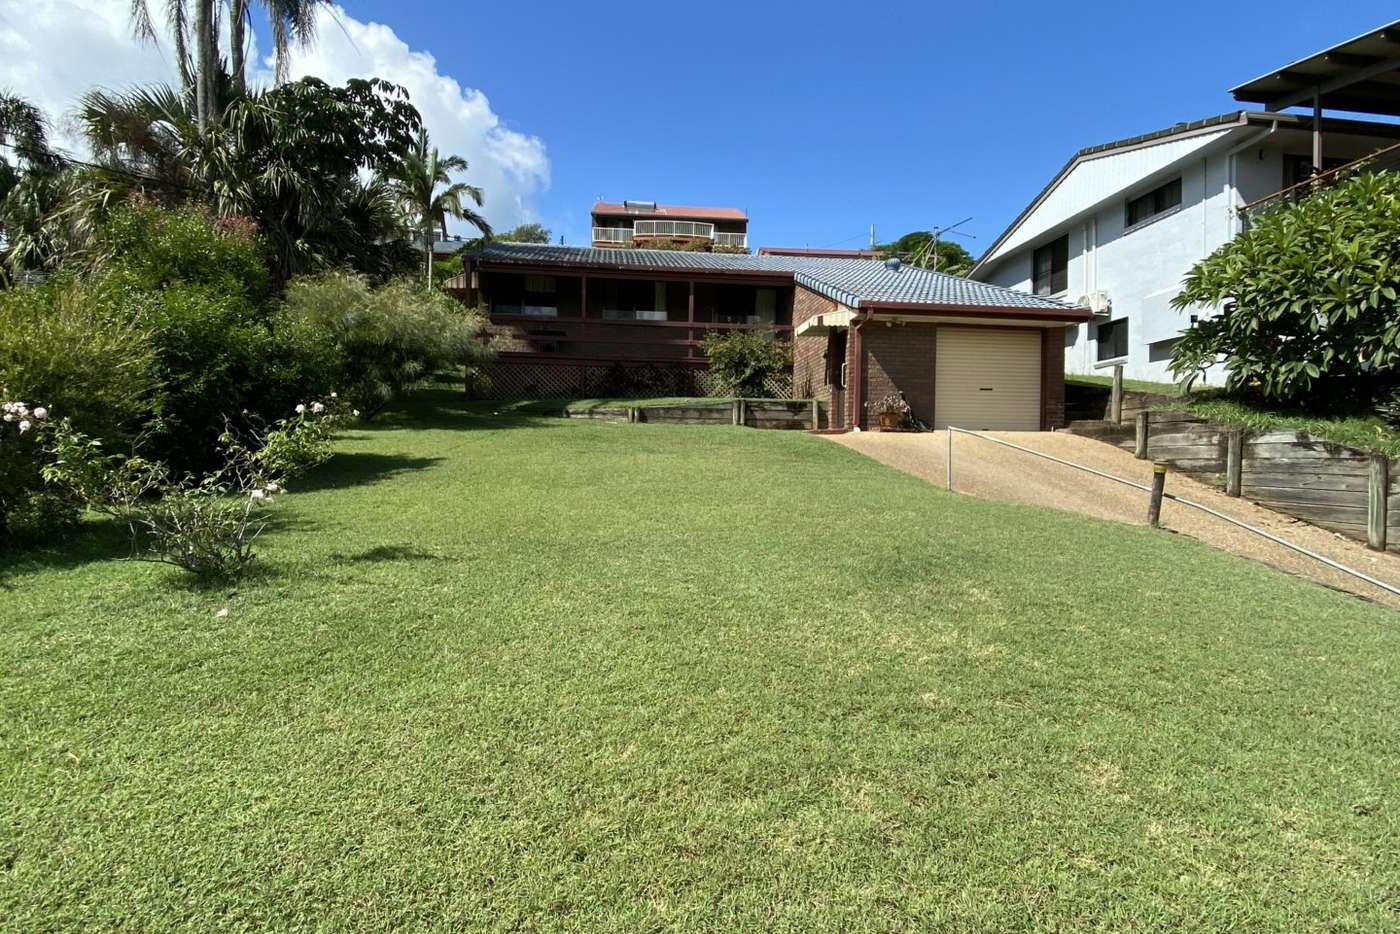 Main view of Homely house listing, 20 Cudgen Road, Kingscliff NSW 2487